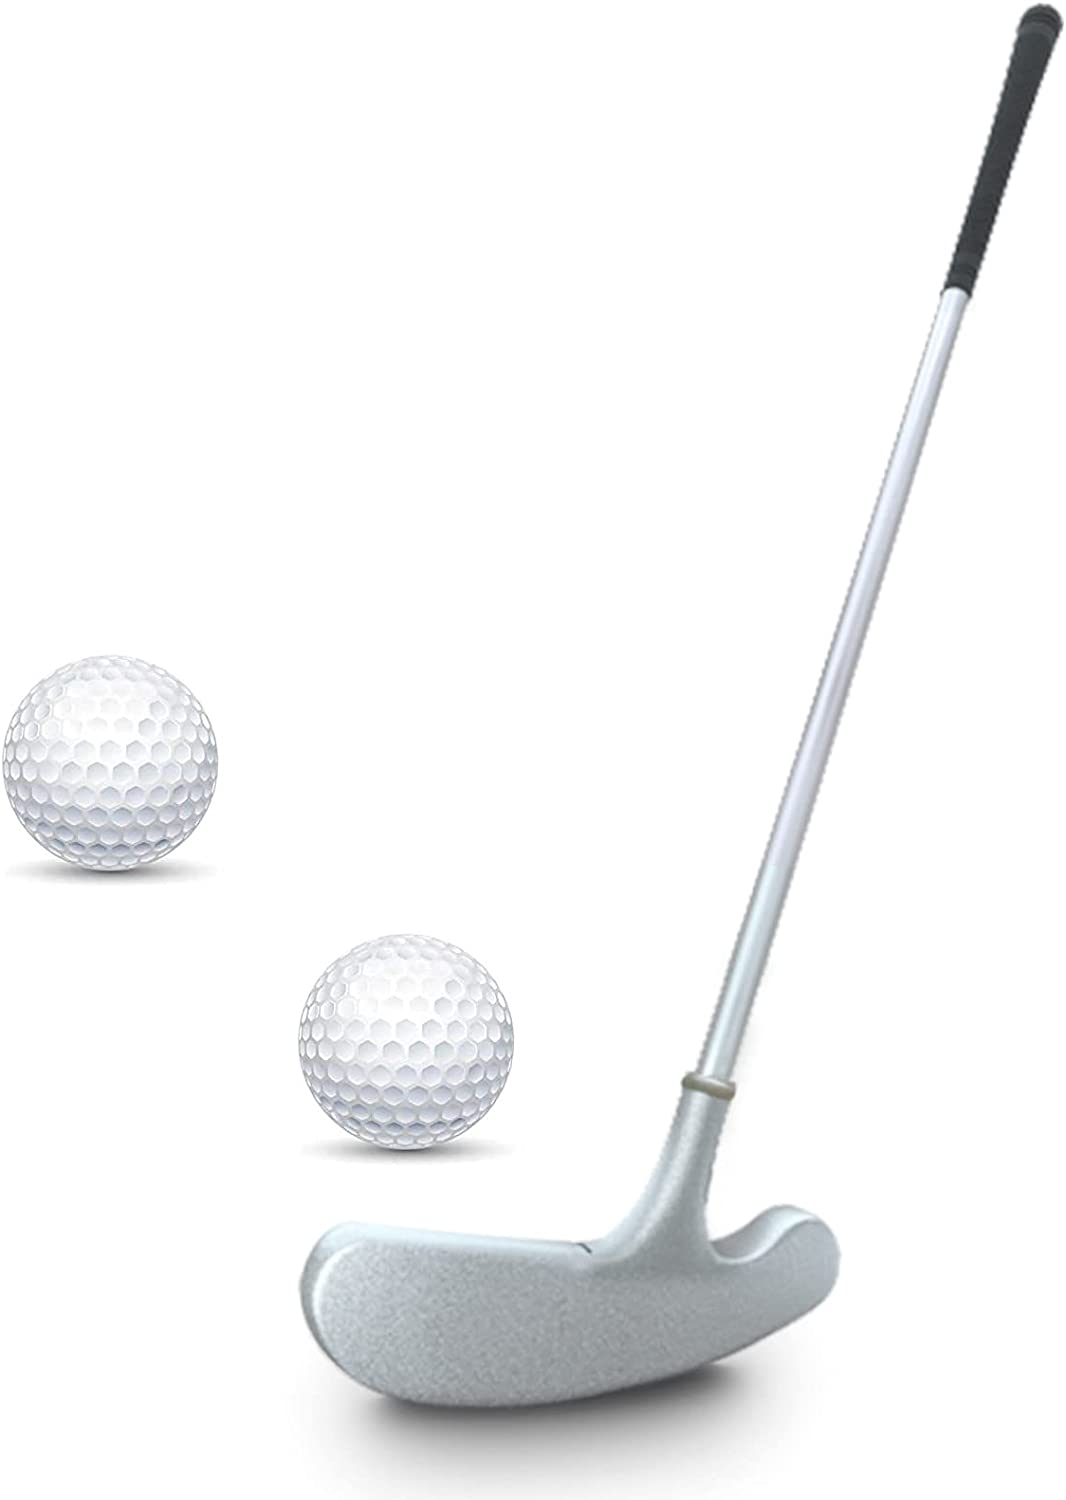 Max 60% OFF Fashionable Golf Putter Two Ways Putters Left Right Men for Handed-Ind